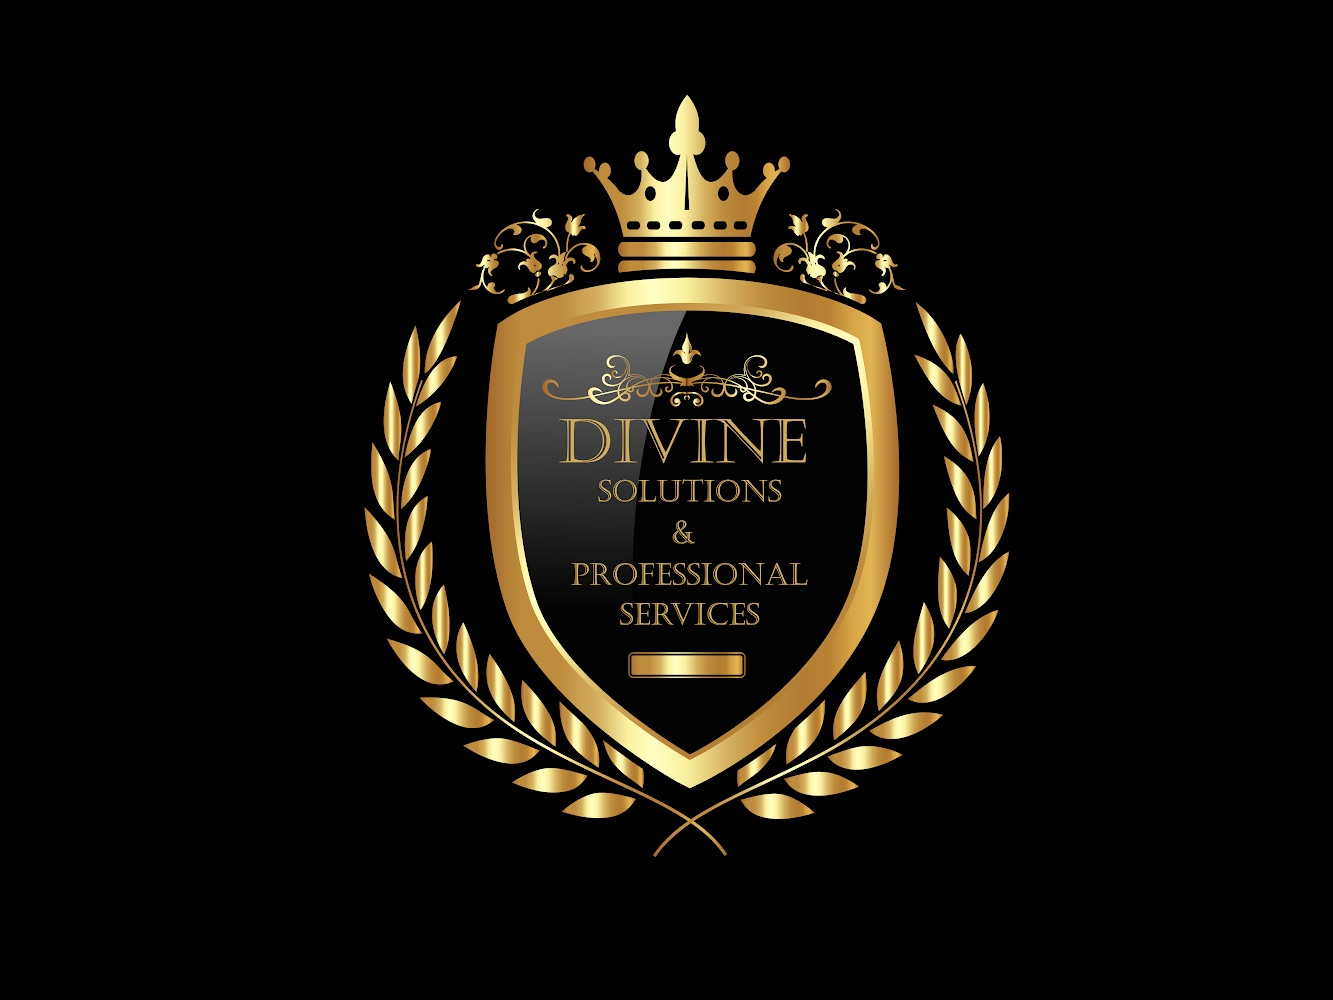 Divine Solutions & Professional Services primary image